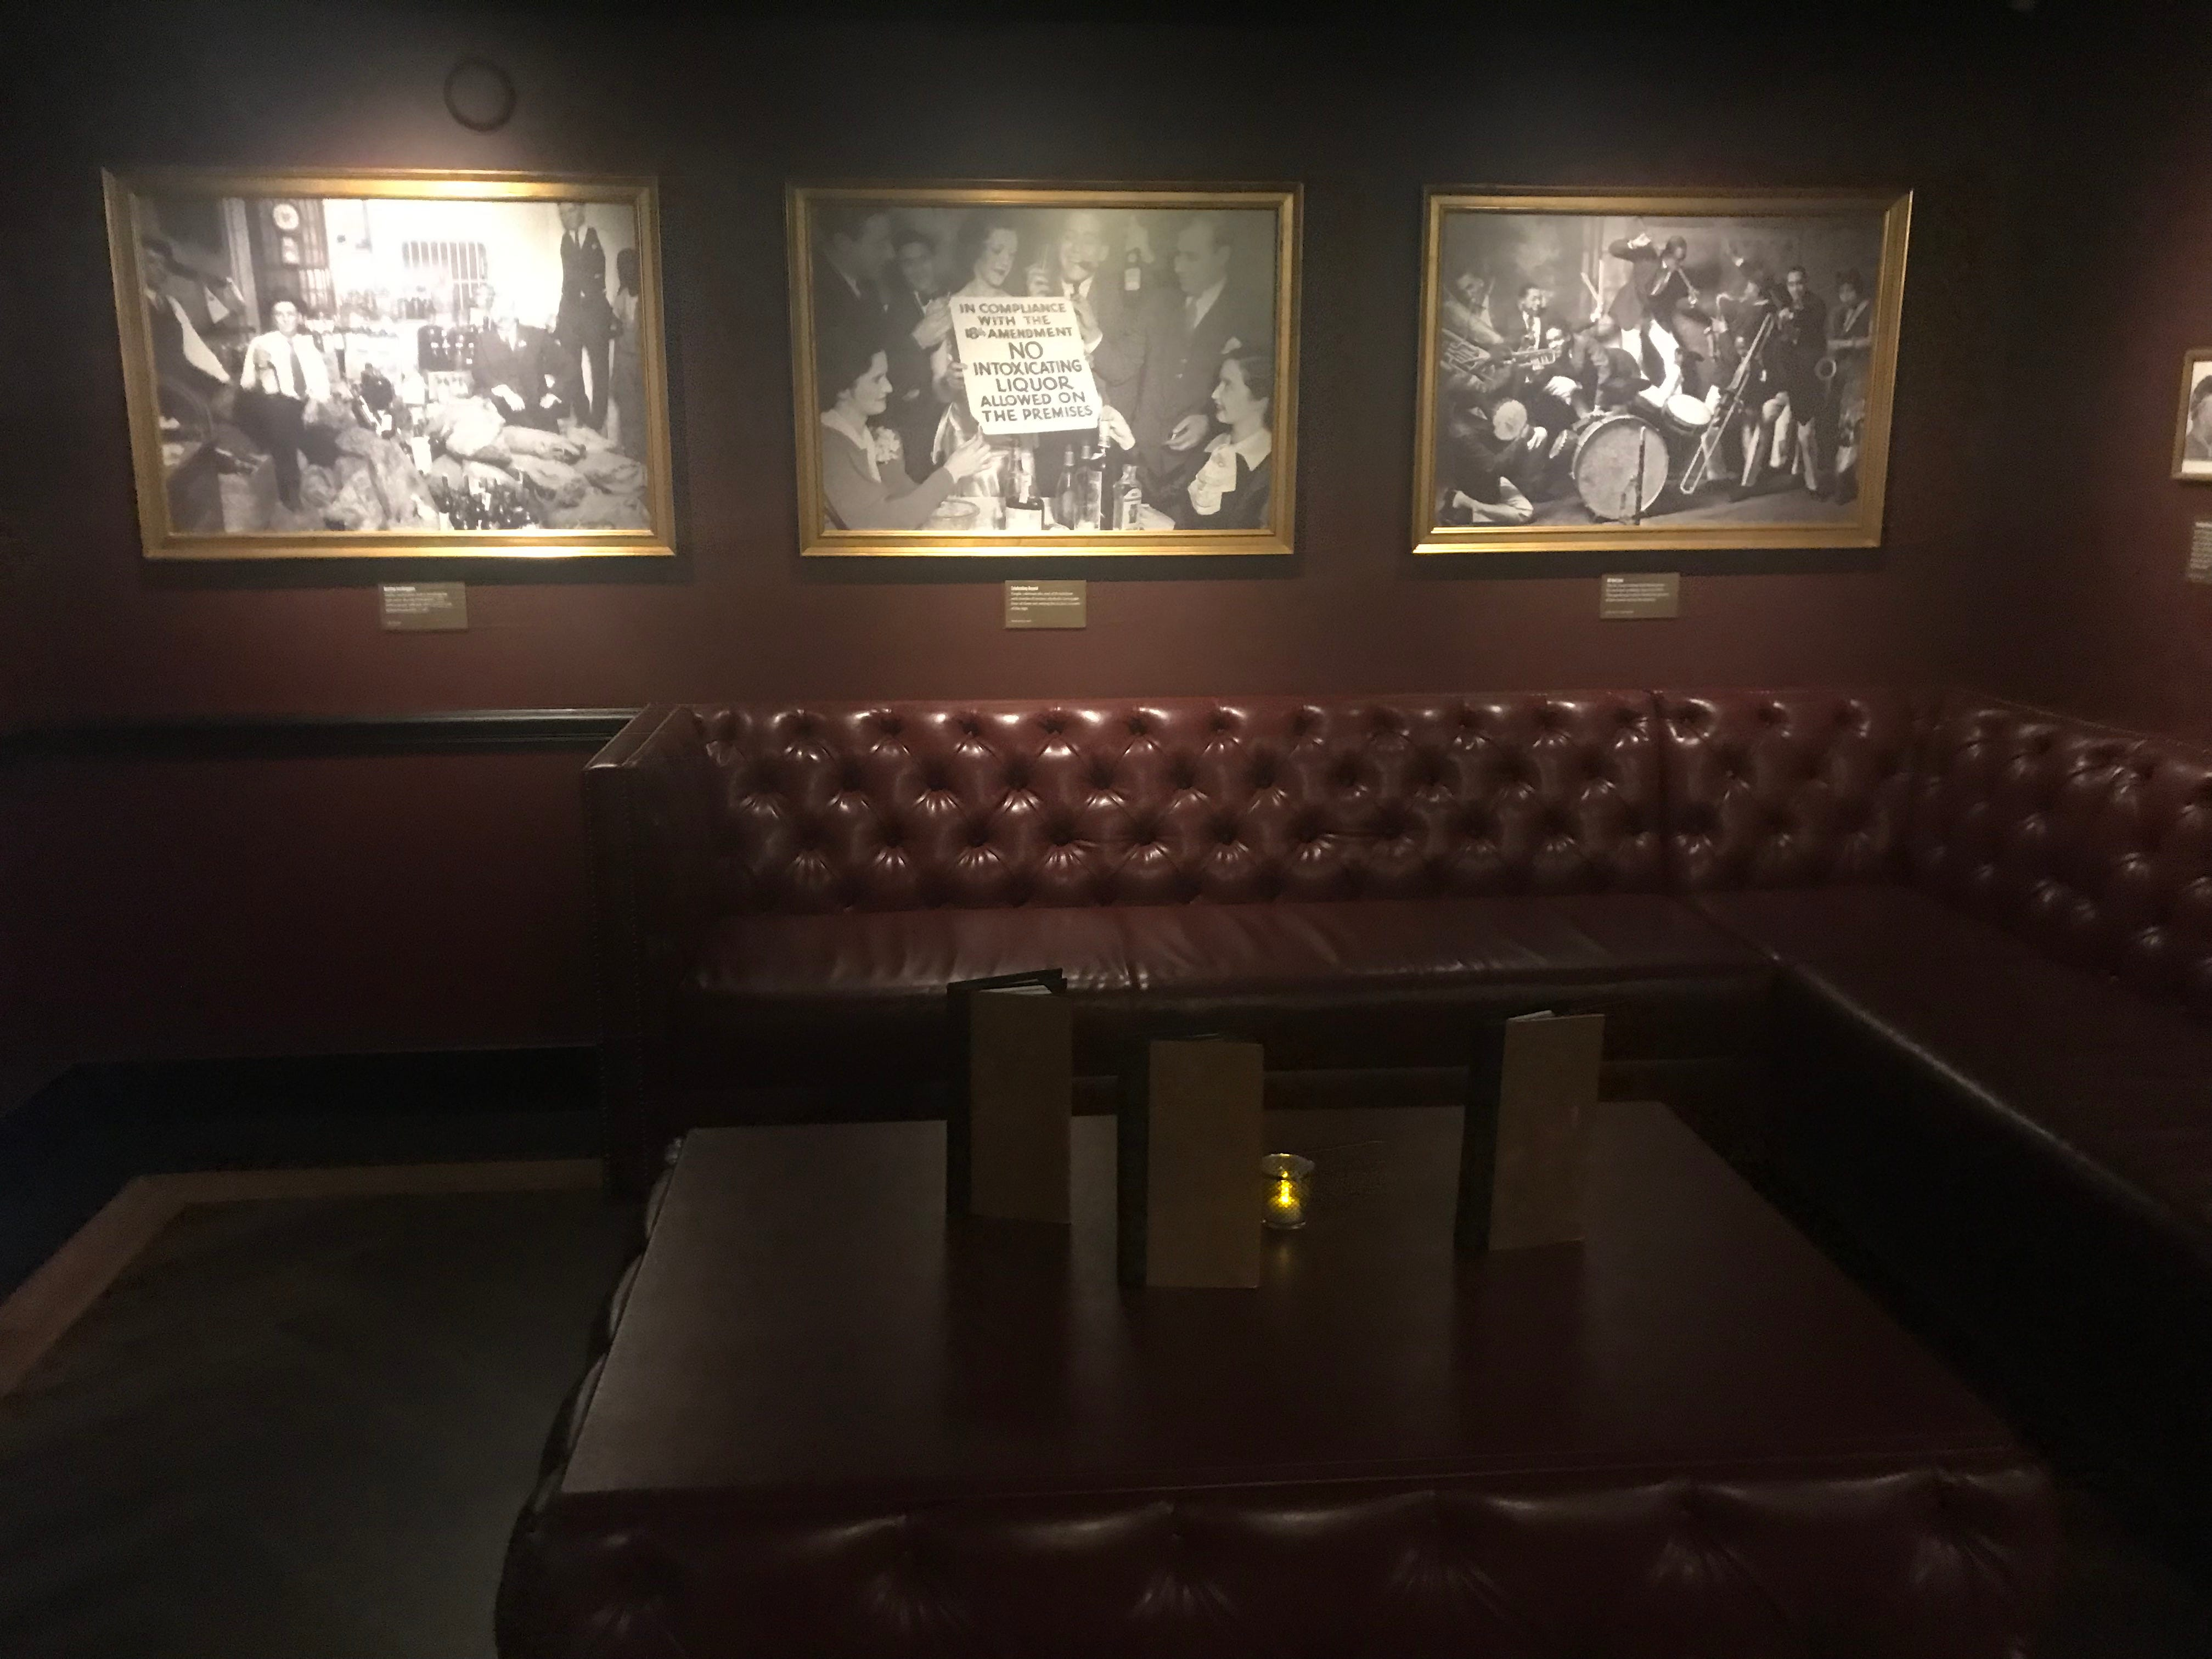 The Underground is a new speakeasy at The Mob Museum in downtown Las Vegas.